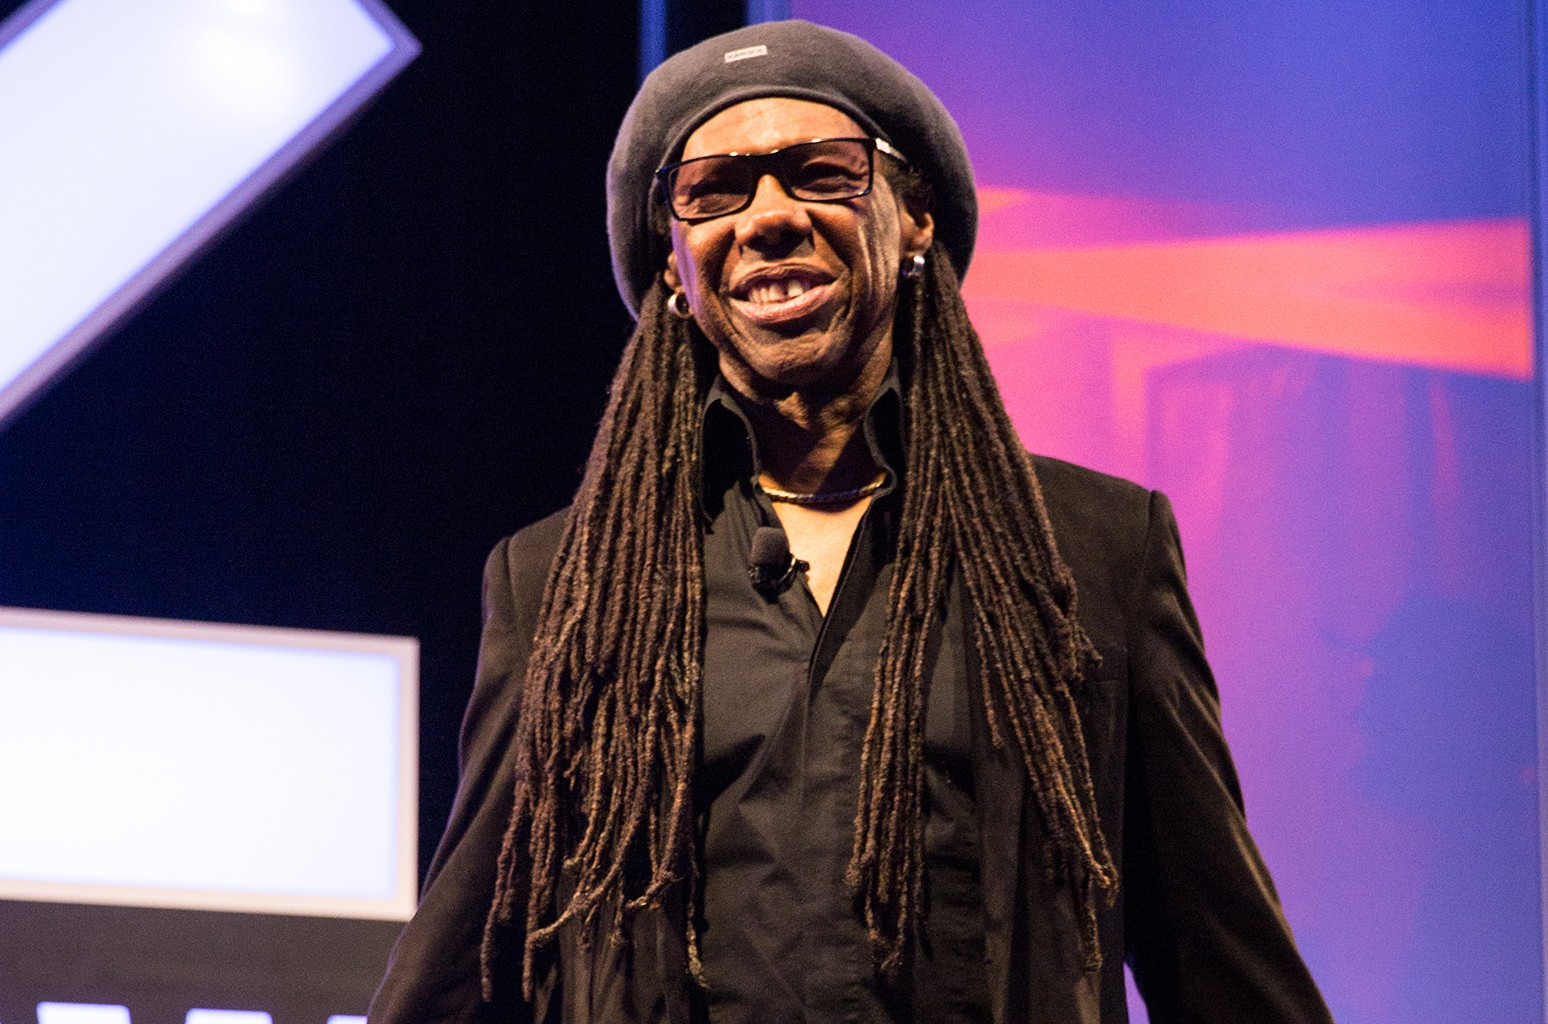 Nile Rodgers delivers his keynote speech at Austin Convention Center on March 15, 2017 in Austin, Texas.